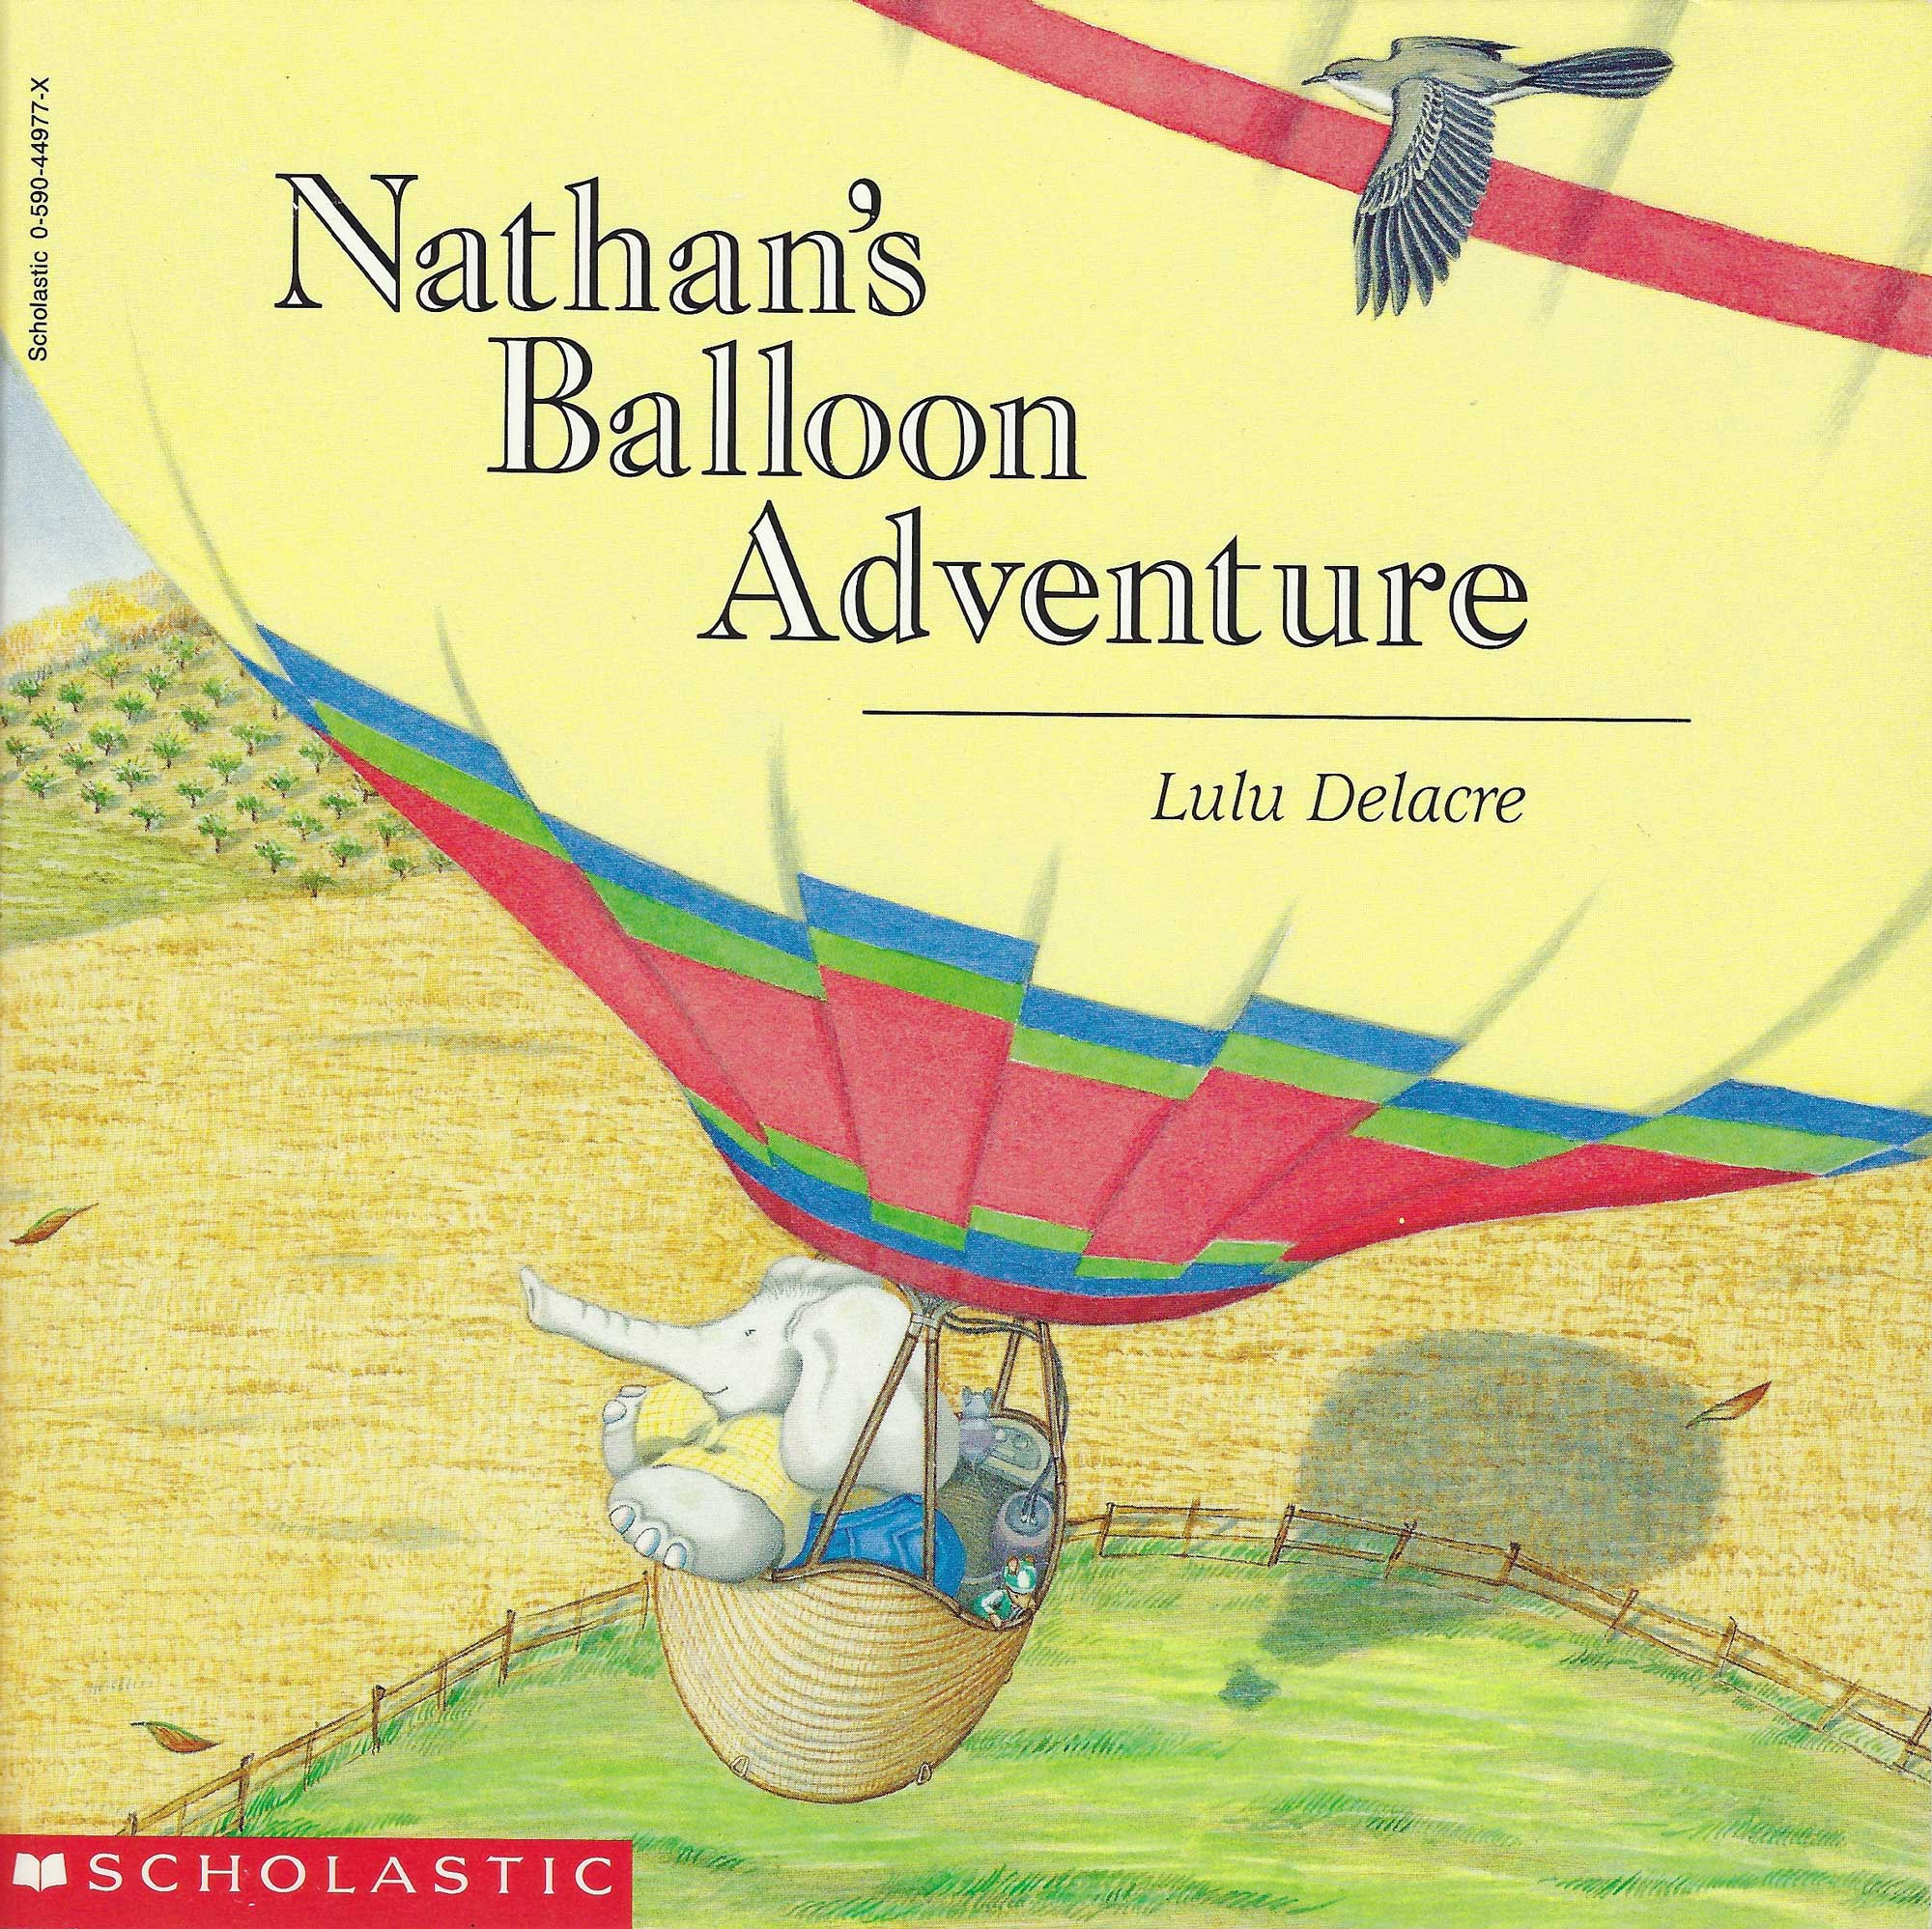 nathan's balloon adventure childrens illustrated book